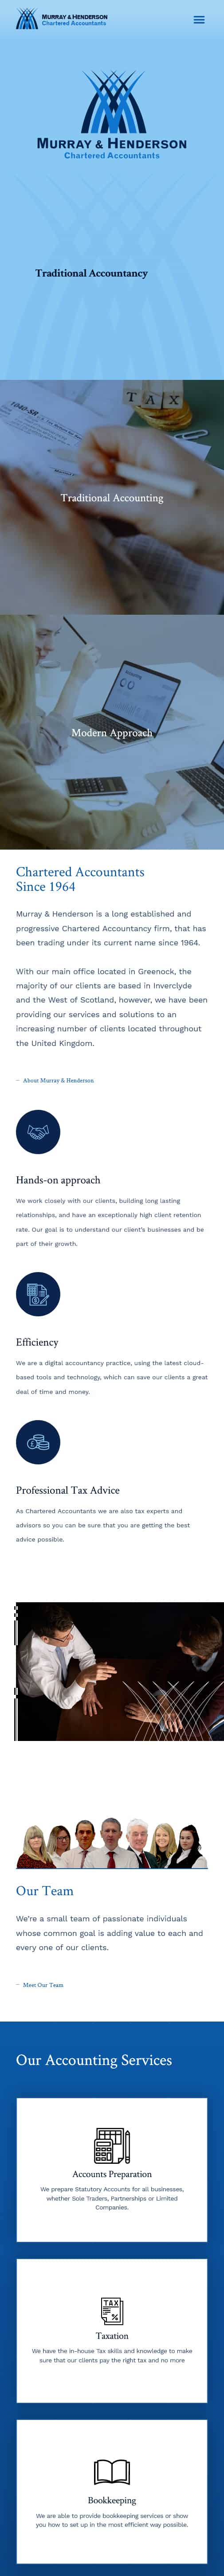 web design for financial sector